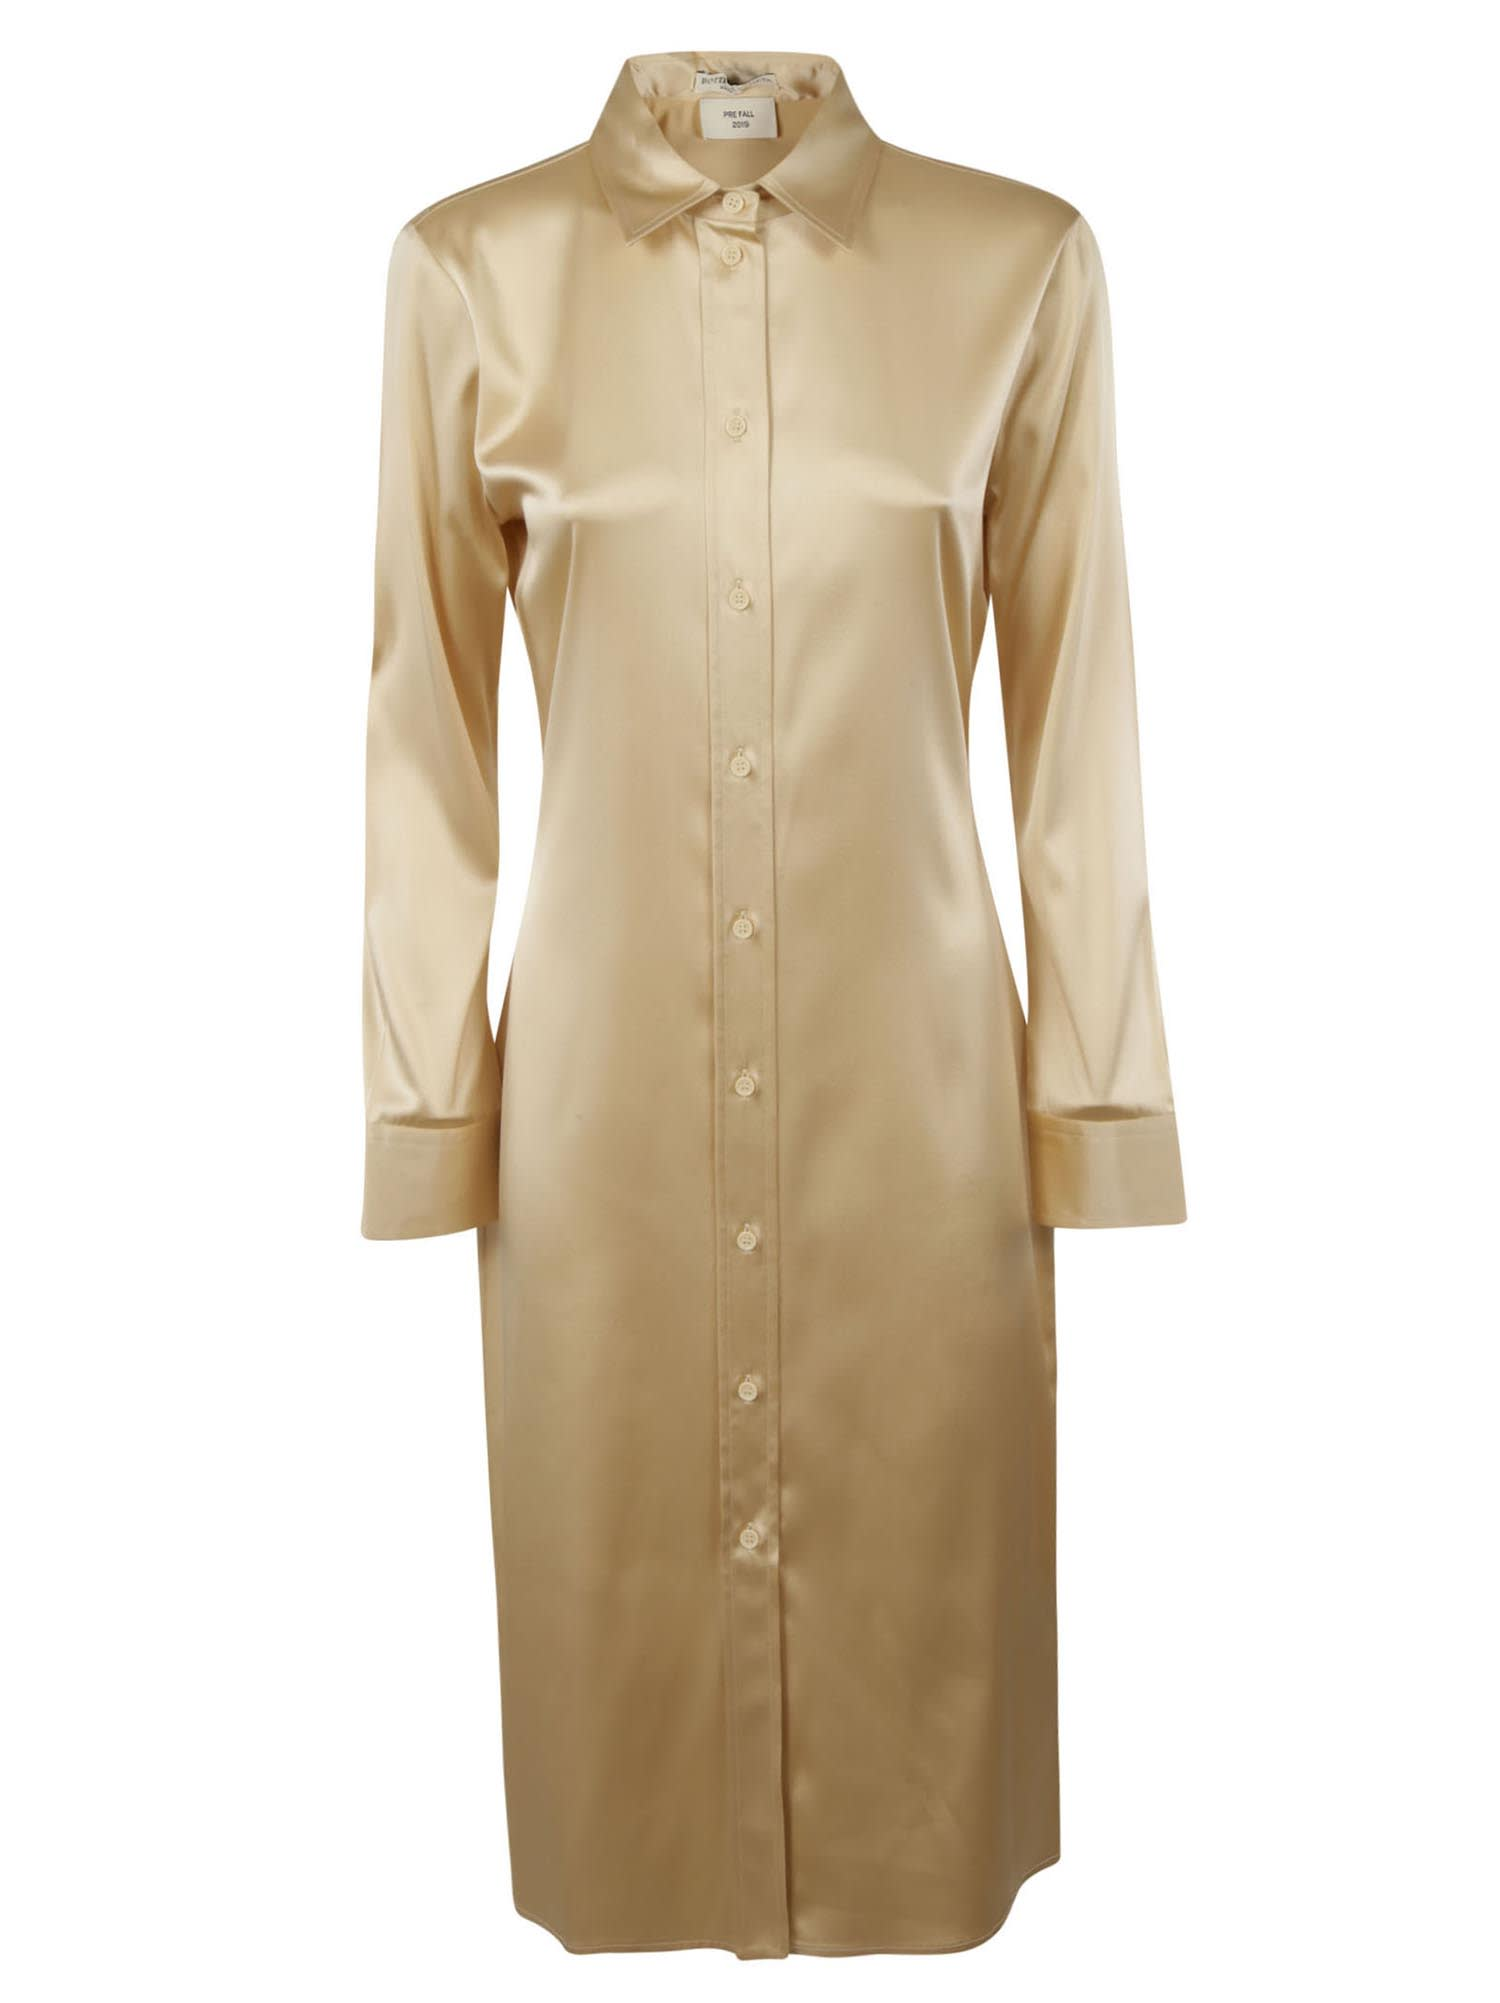 Bottega Veneta Light Satin Stretch Dress